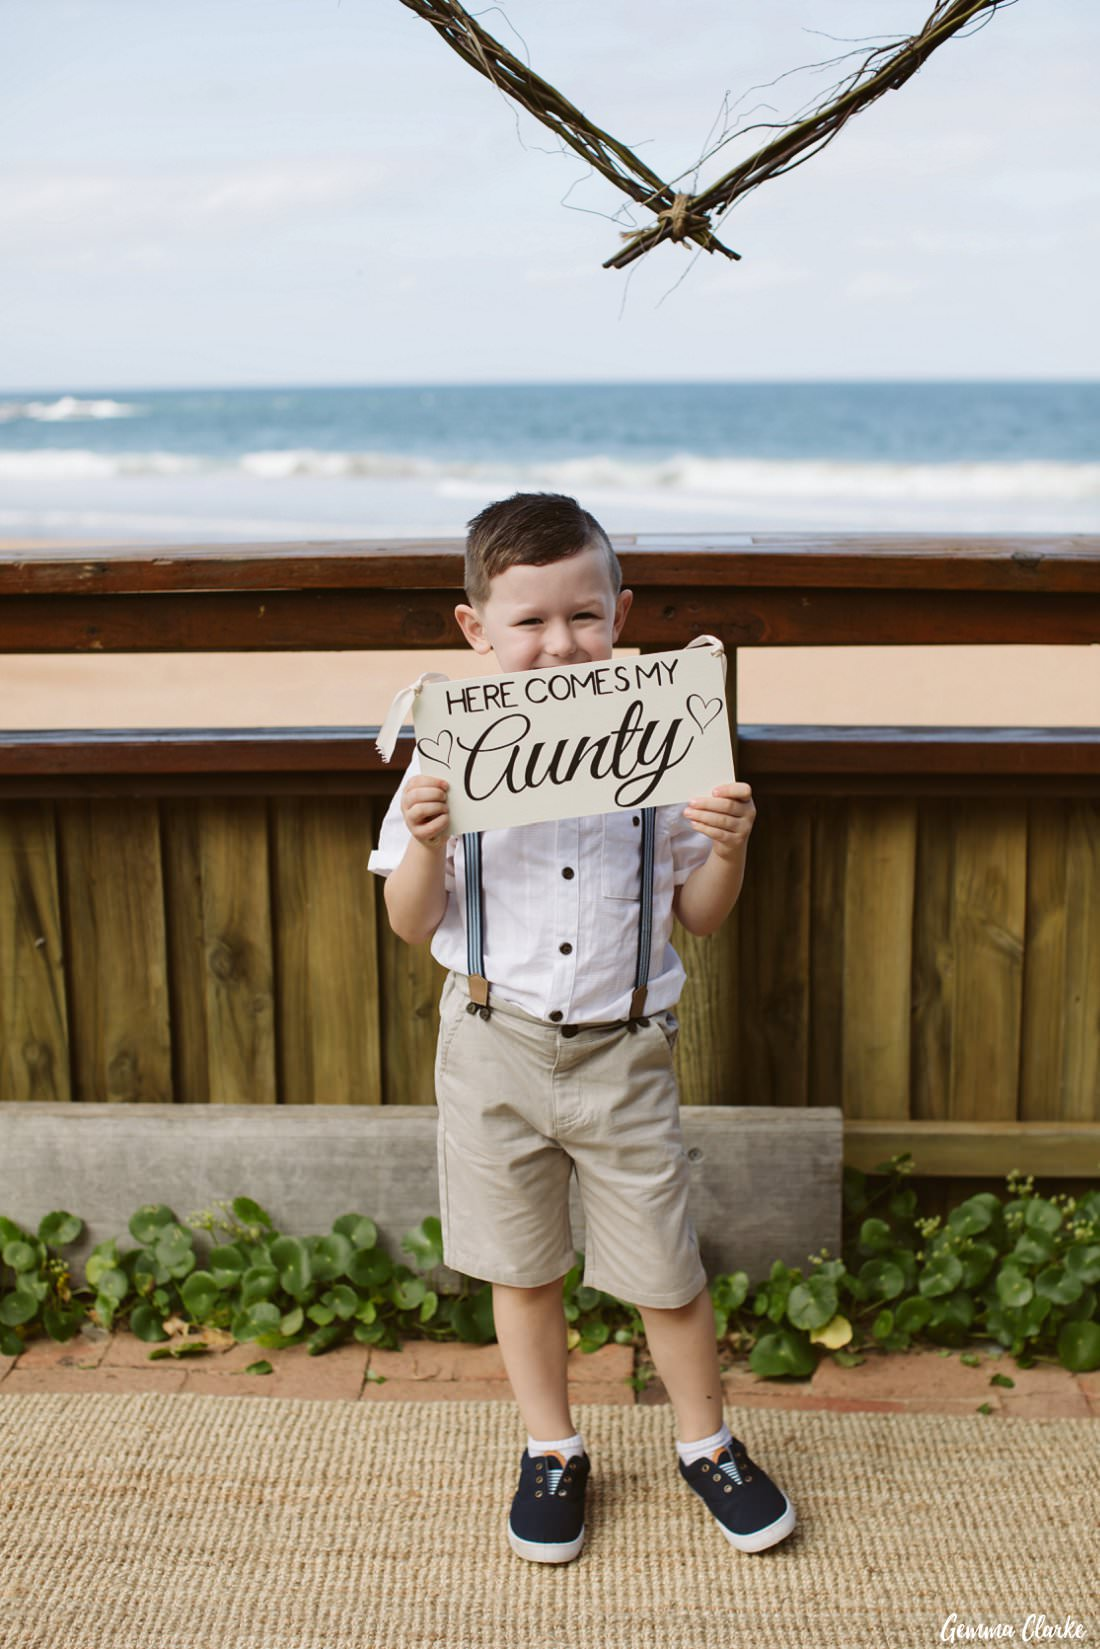 Cute page boy holding up 'Here Comes my Aunty' sign and ready to walk down the aisle at this Bilgola Beach Wedding